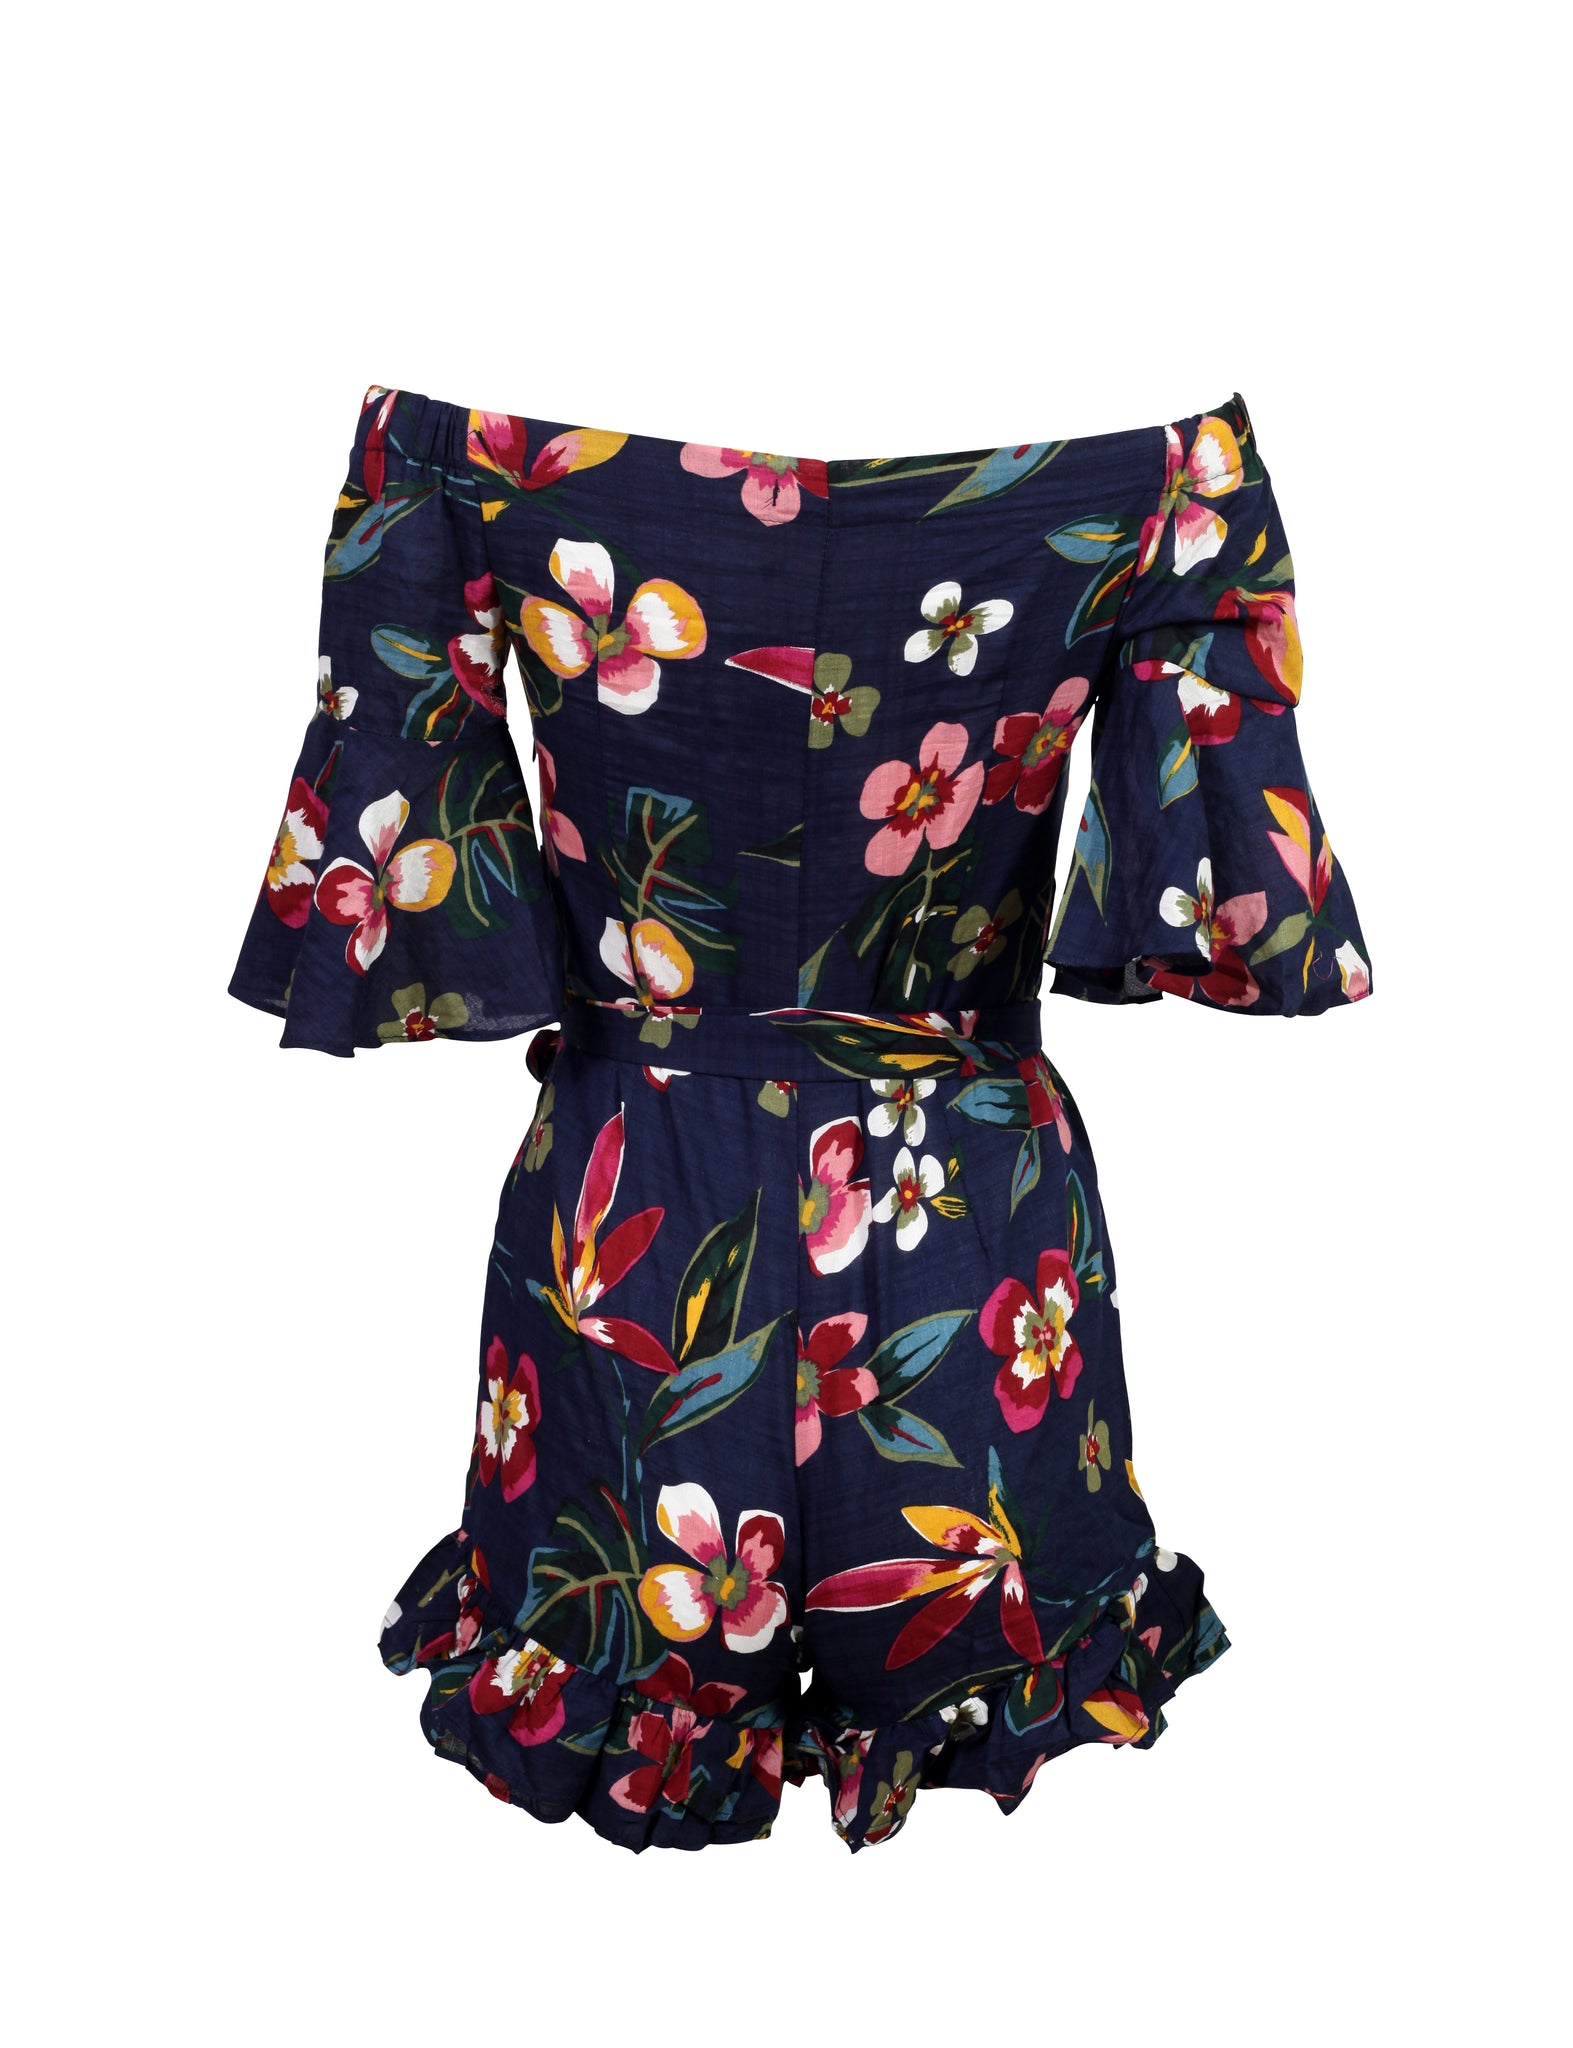 Rear view of a navy floral print playsuit with 3/4 sleeves